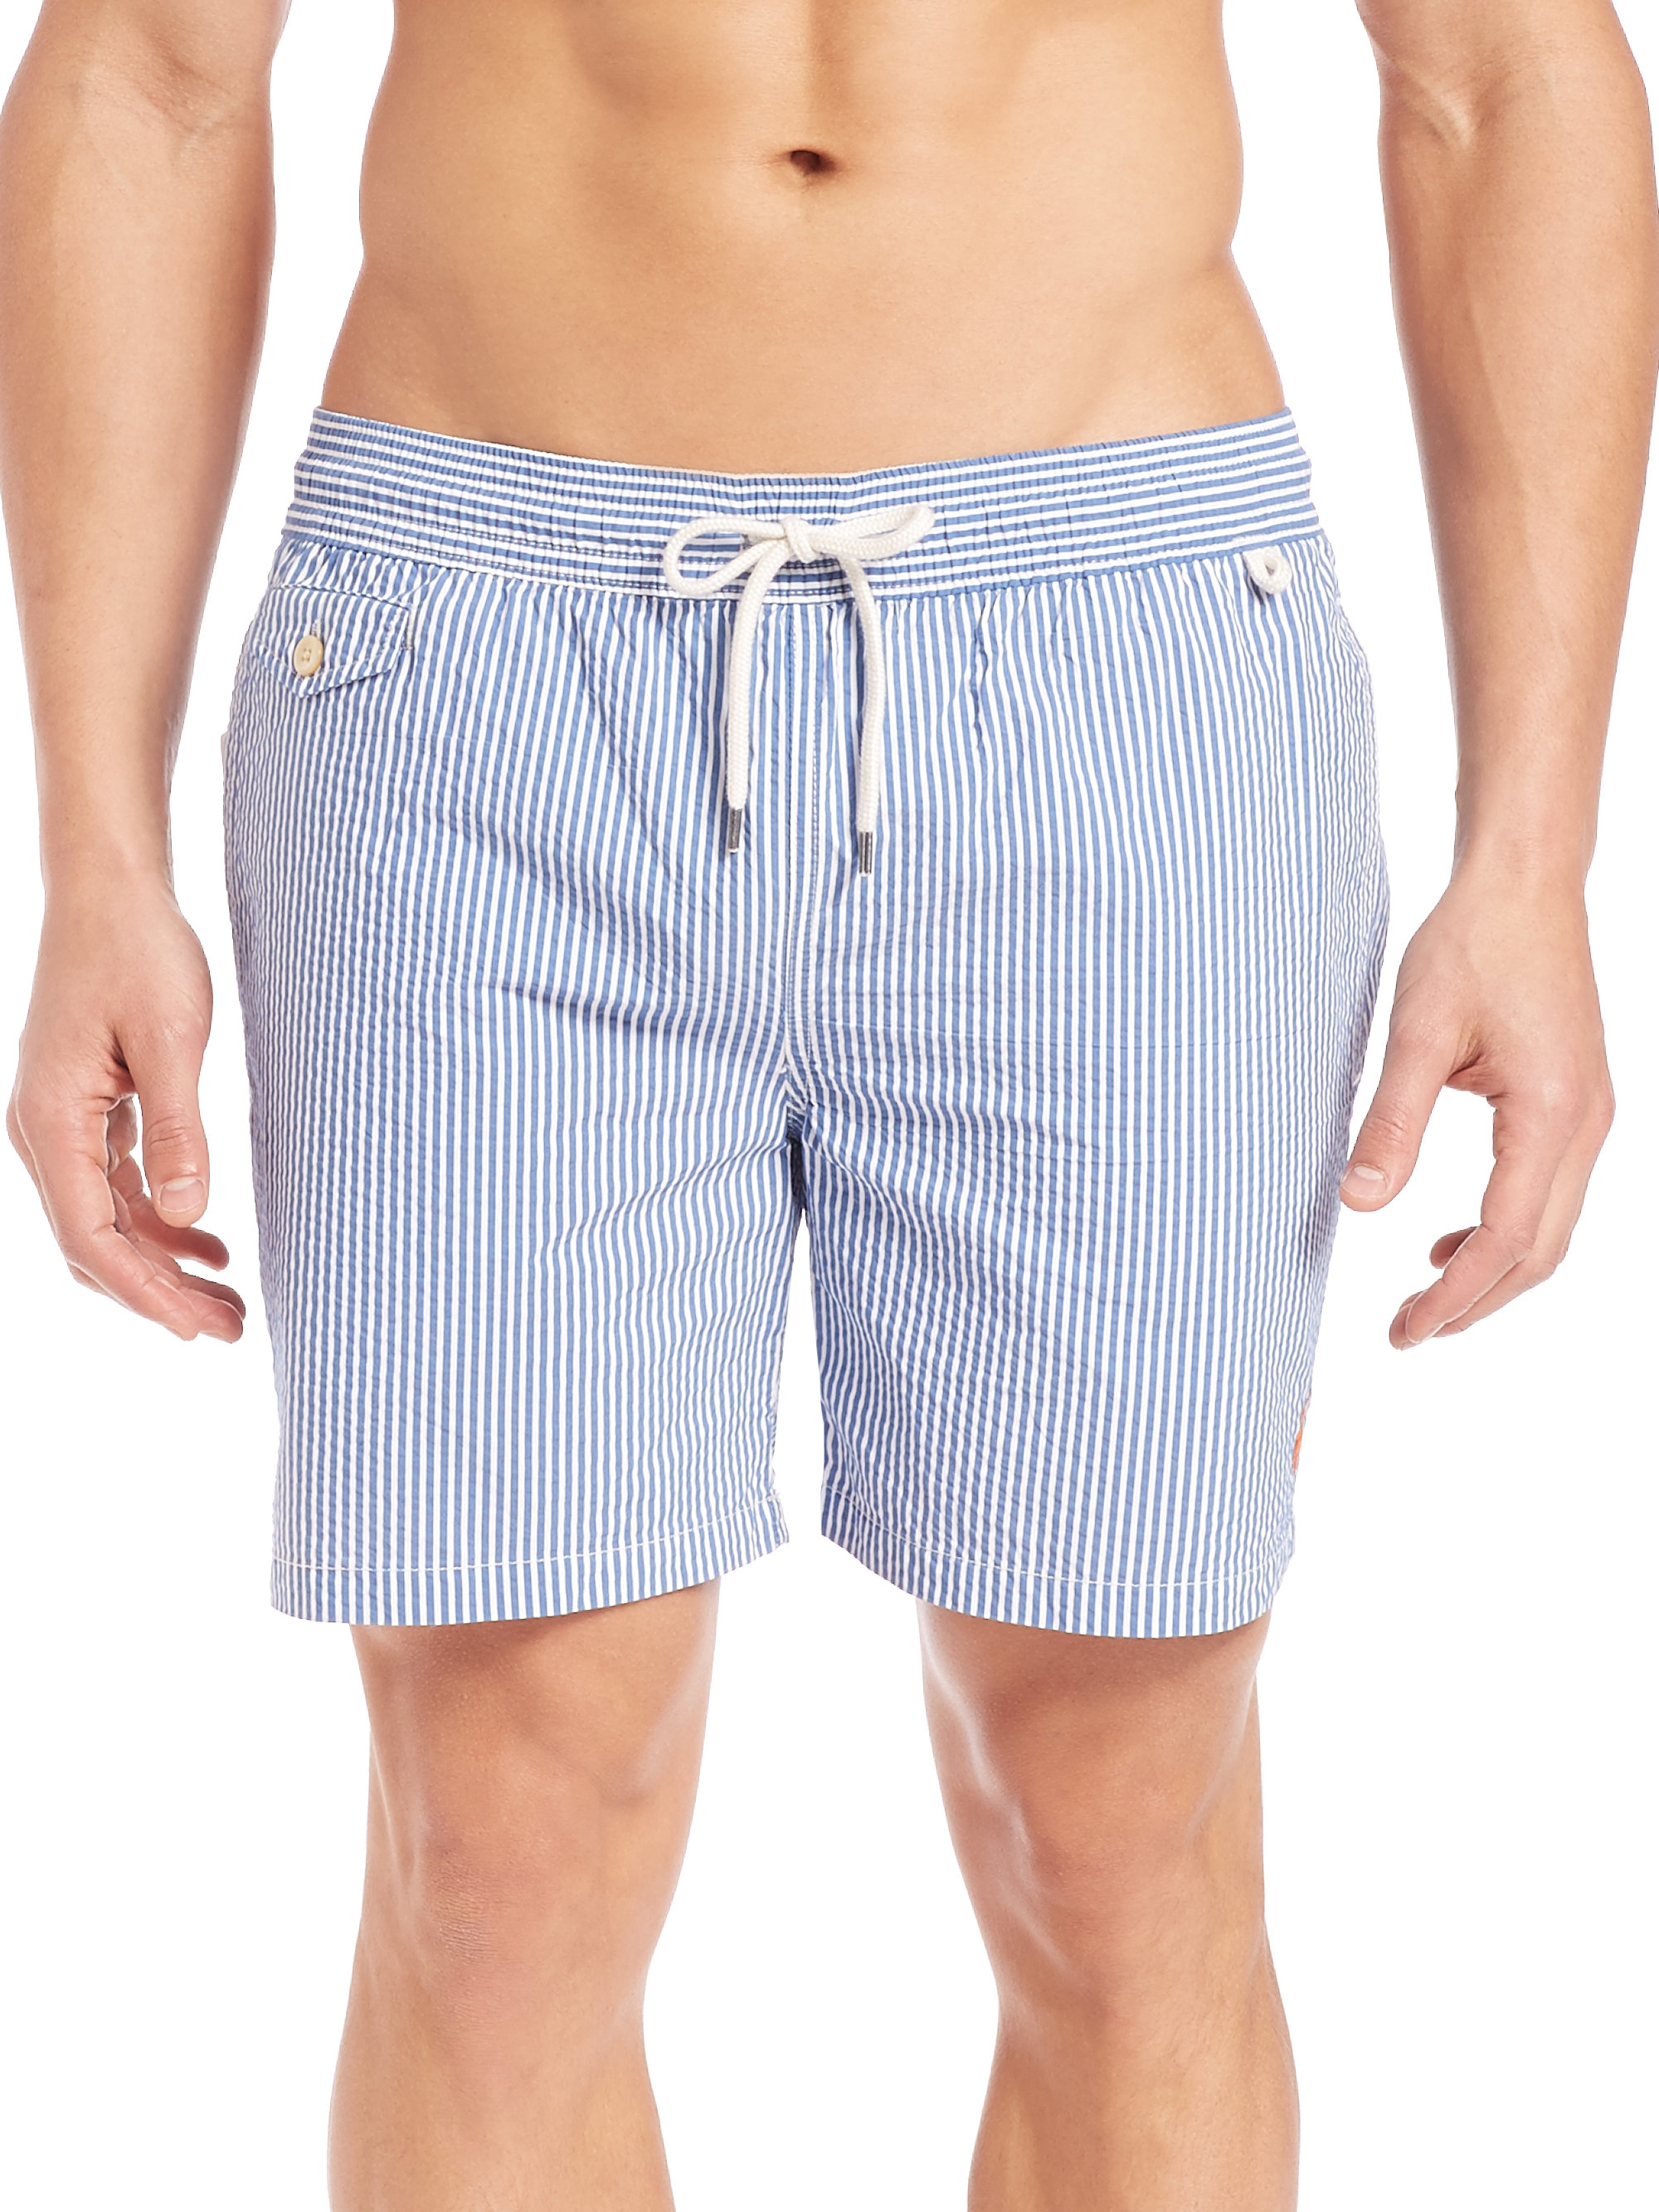 65a75eaffa Polo Ralph Lauren Seersucker Traveler Swim Shorts in Blue for Men - Lyst